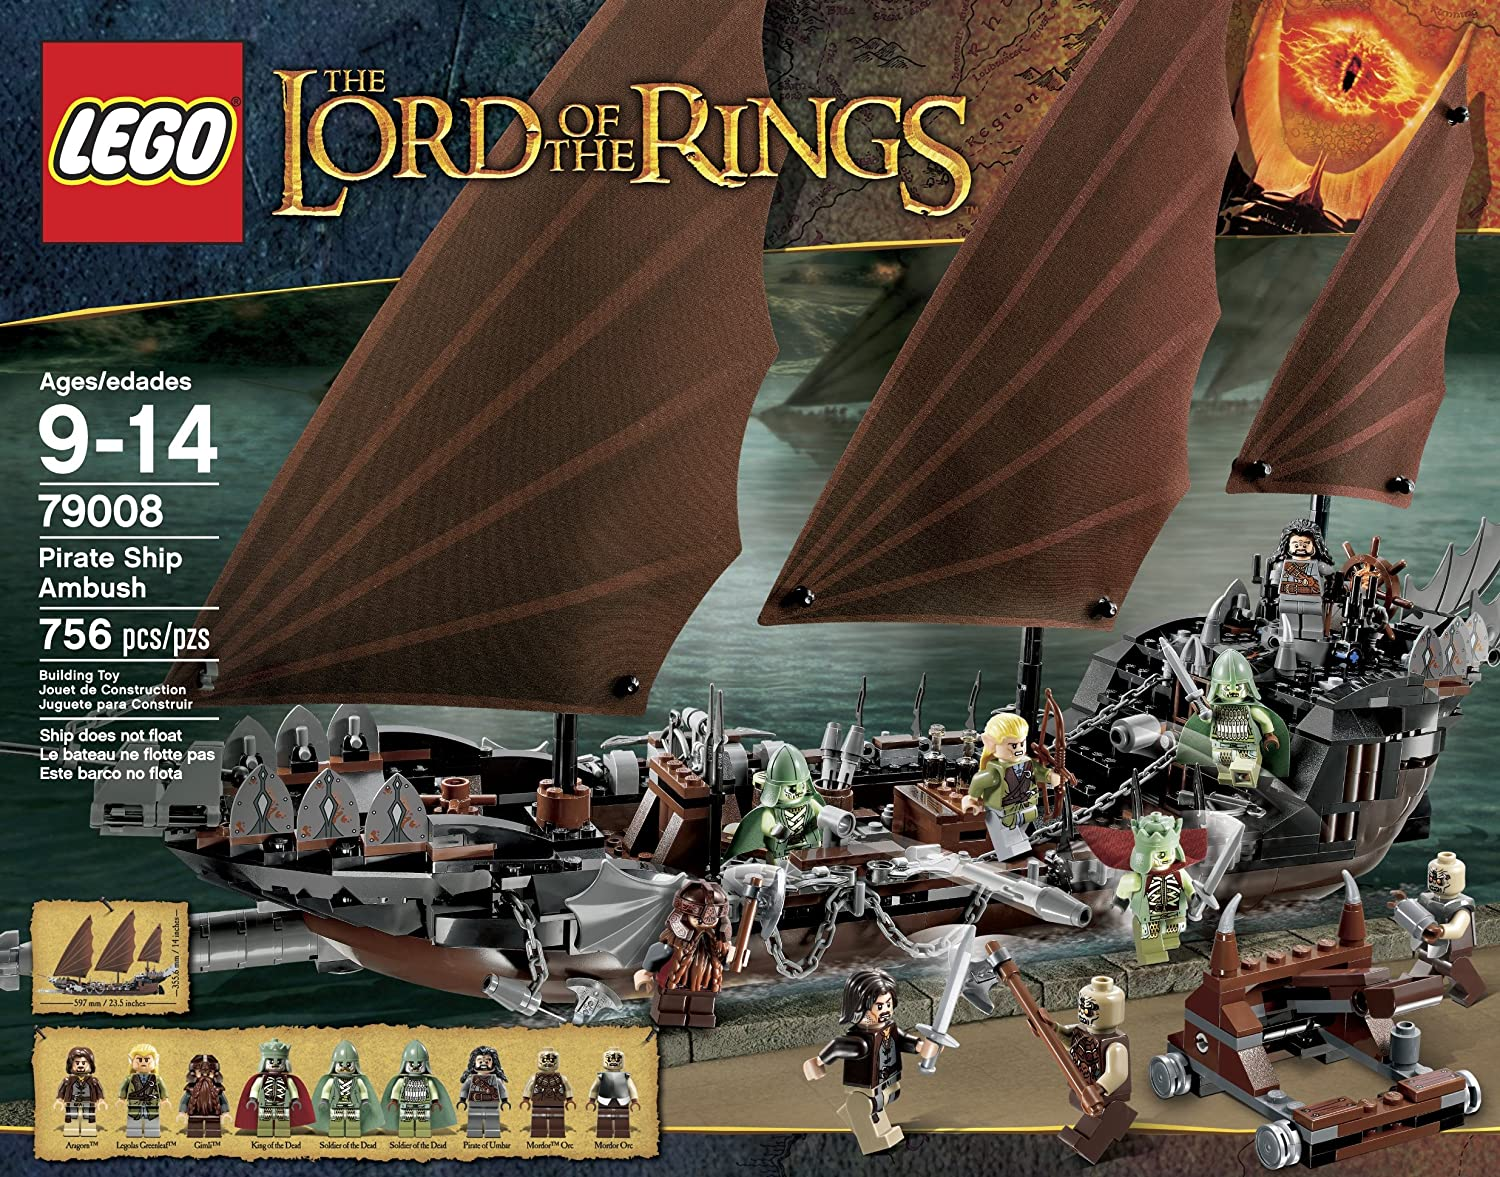 Amazon.com: LEGO LOTR 79008 Pirate Ship Ambush (Discontinued by  manufacturer): Toys & Games